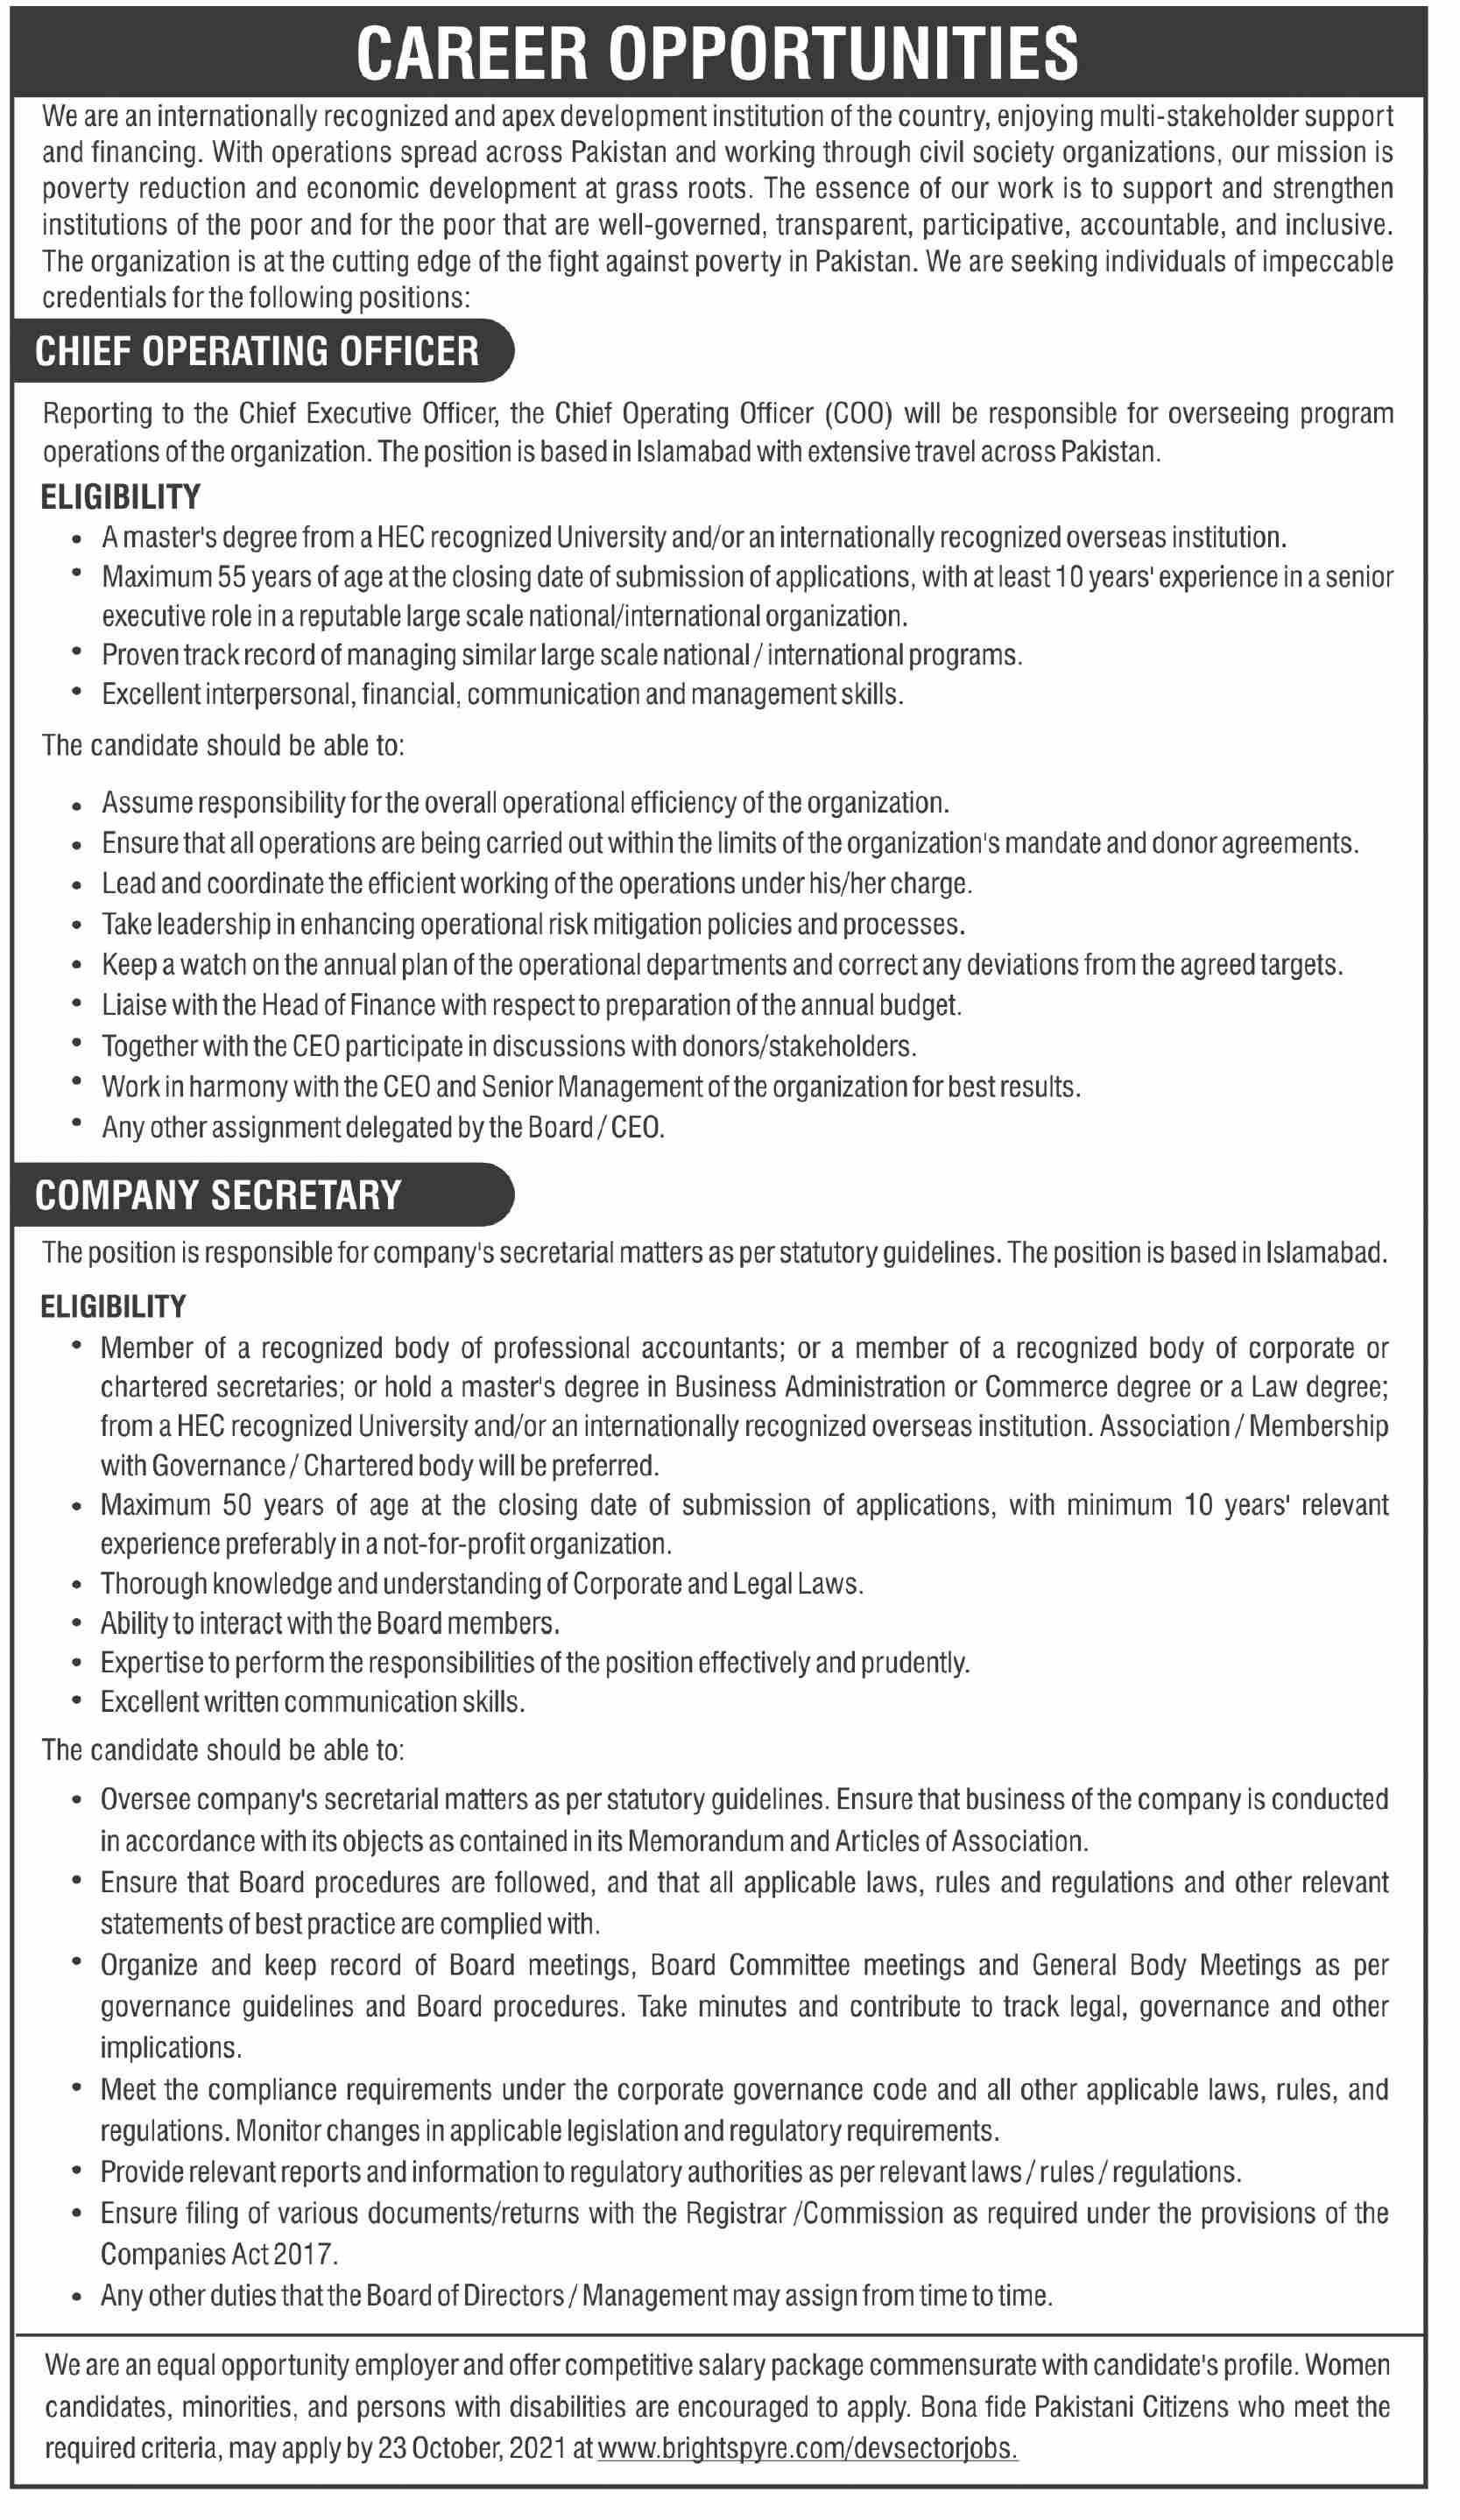 Government Sector Comapny jobs advertisement